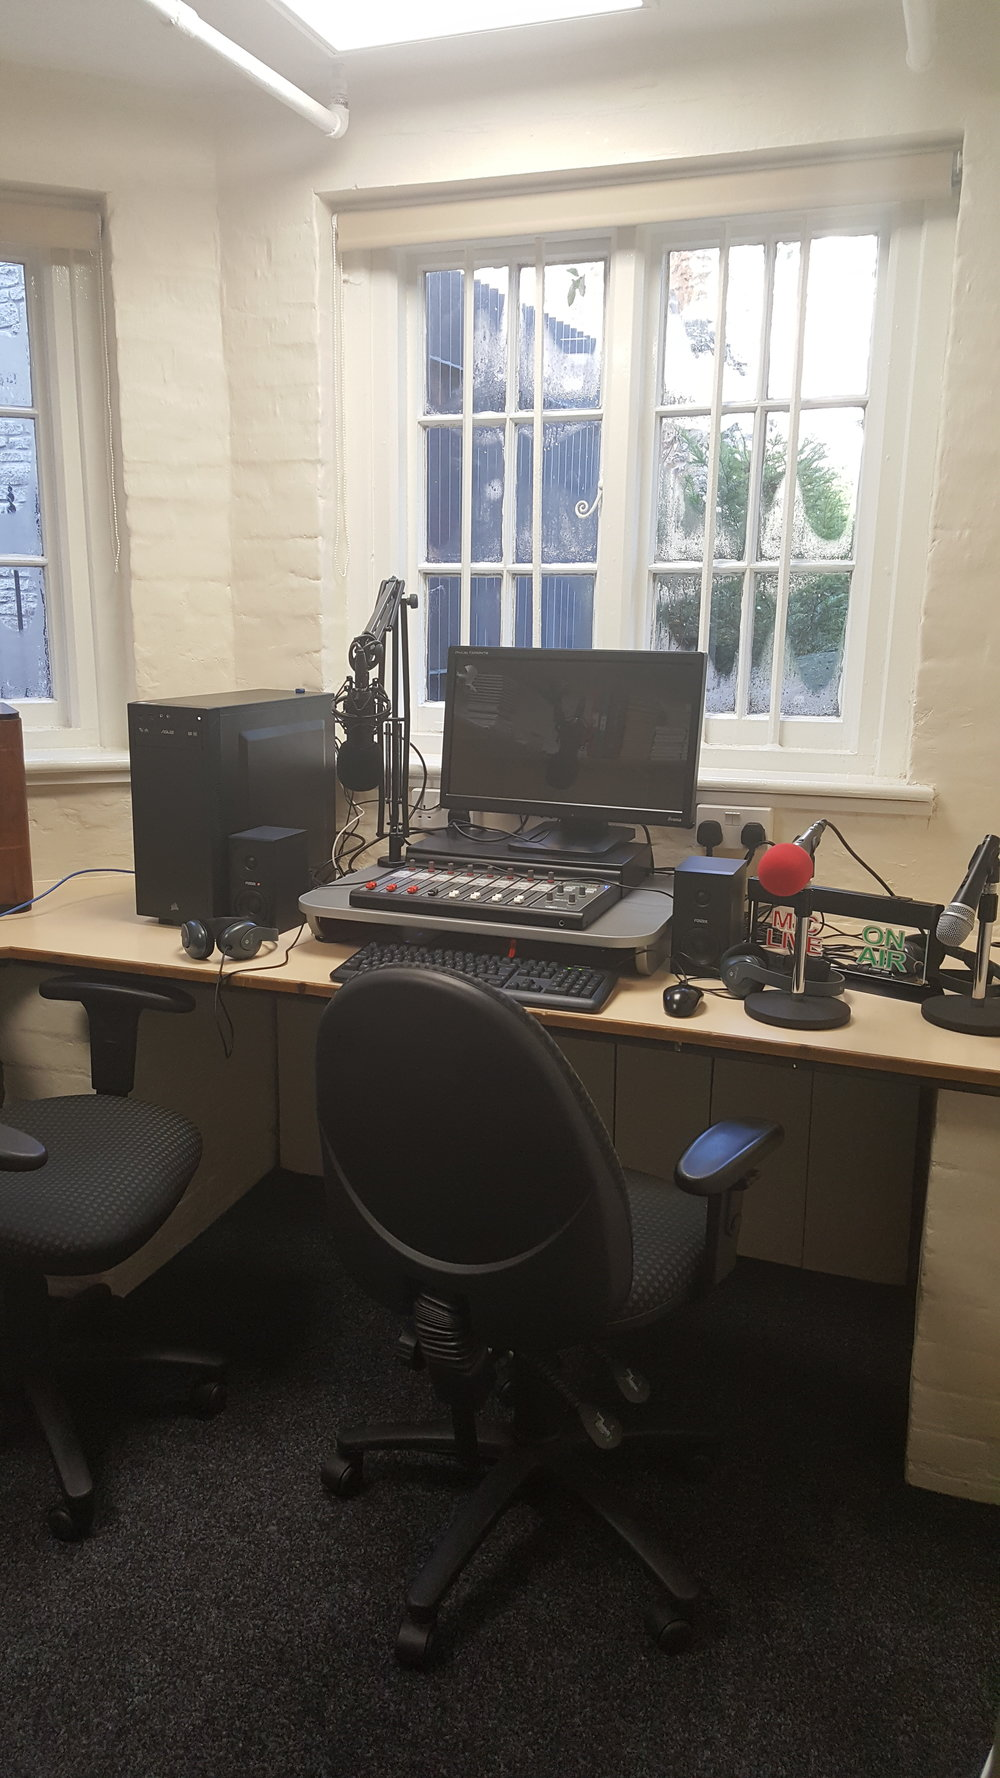 The final set up for the E23 studio